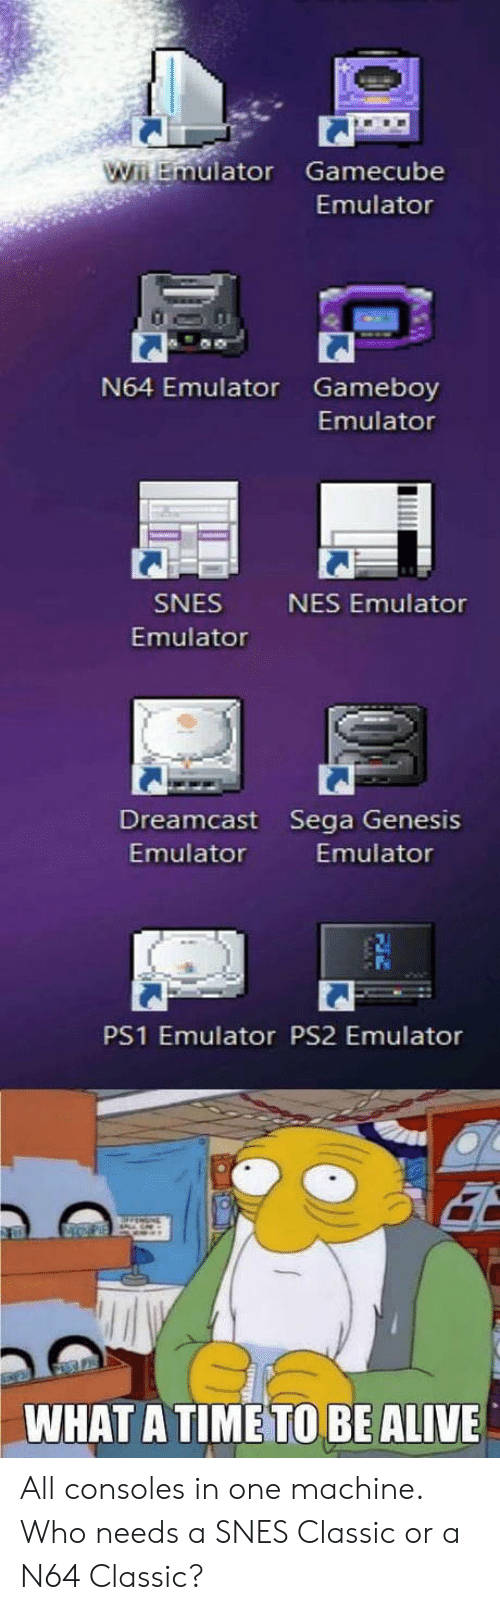 n64: uator Gamecube  Emulator  N64 Emulator Gameboy  Emulator  SNES  Emulator  NES Emulator  Dreamcast Sega Genesis  Emulator  Emulator  PS1 Emulator PS2 Emulator  WHAT A TIME TO BE ALIVE All consoles in one machine. Who needs a SNES Classic or a N64 Classic?